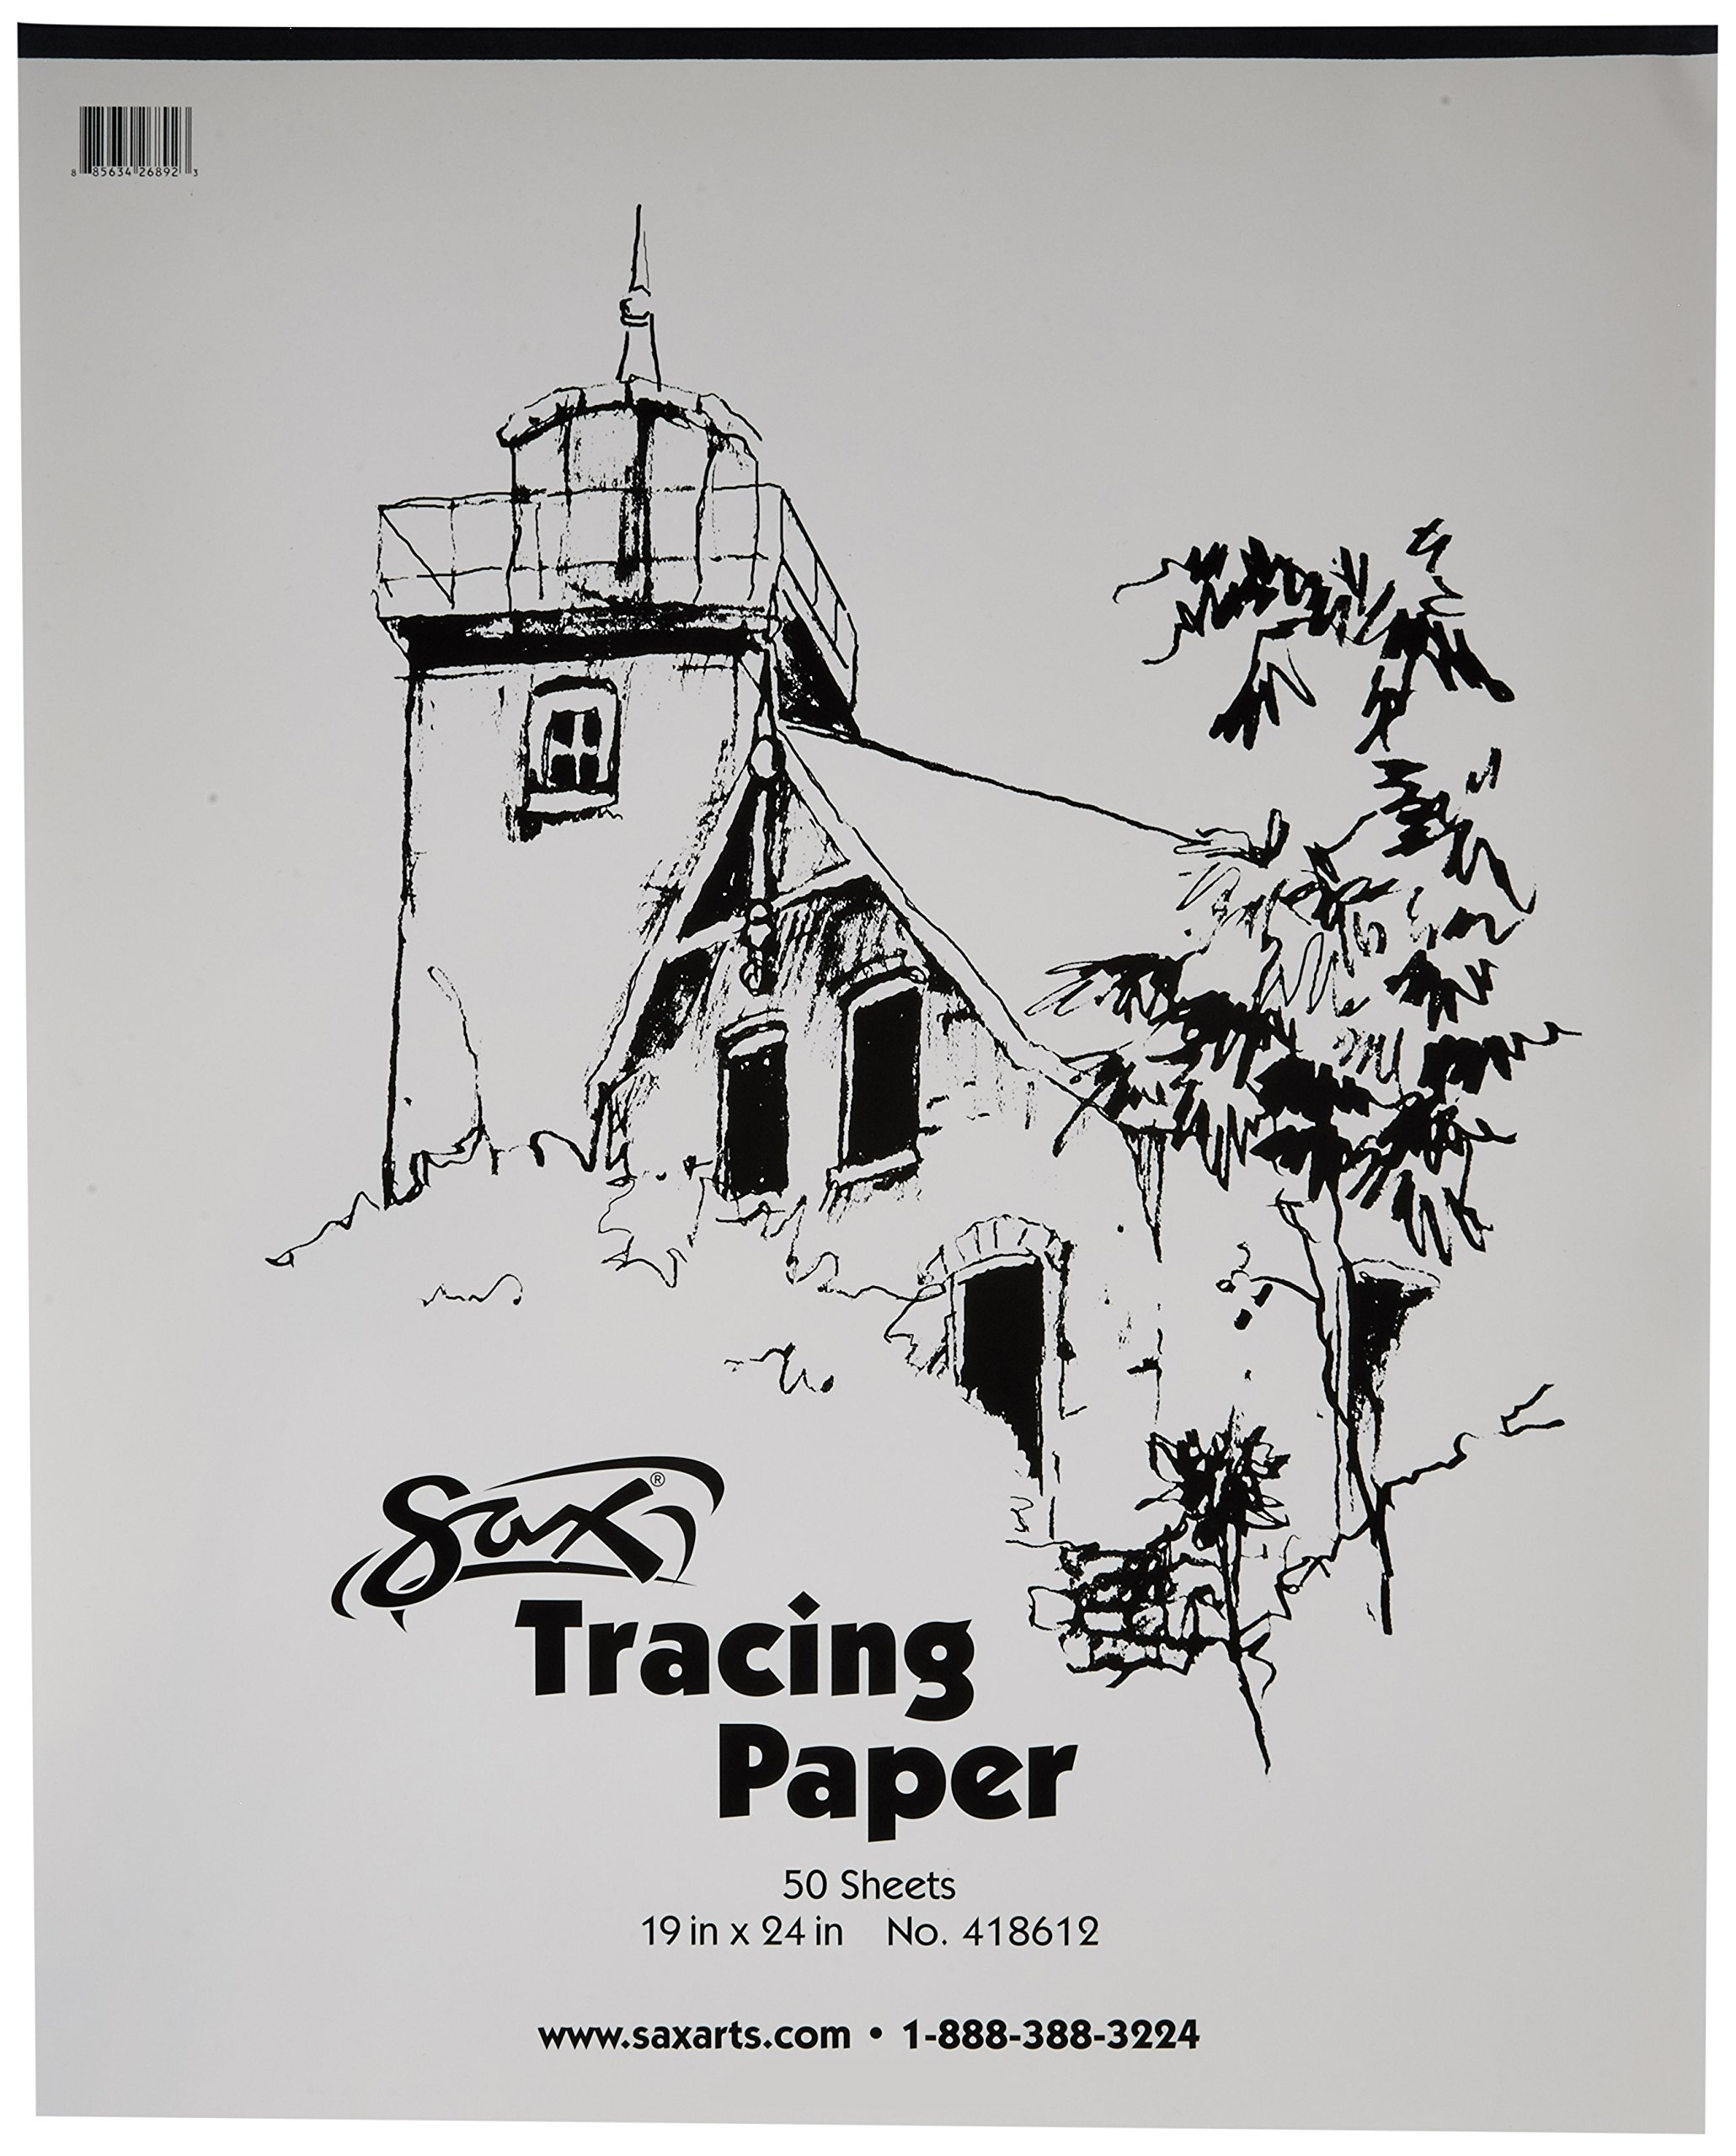 Sax Tracing Paper Pad, 25 lbs, 19 x 24 Inches, White, Pack of 50 by Sax